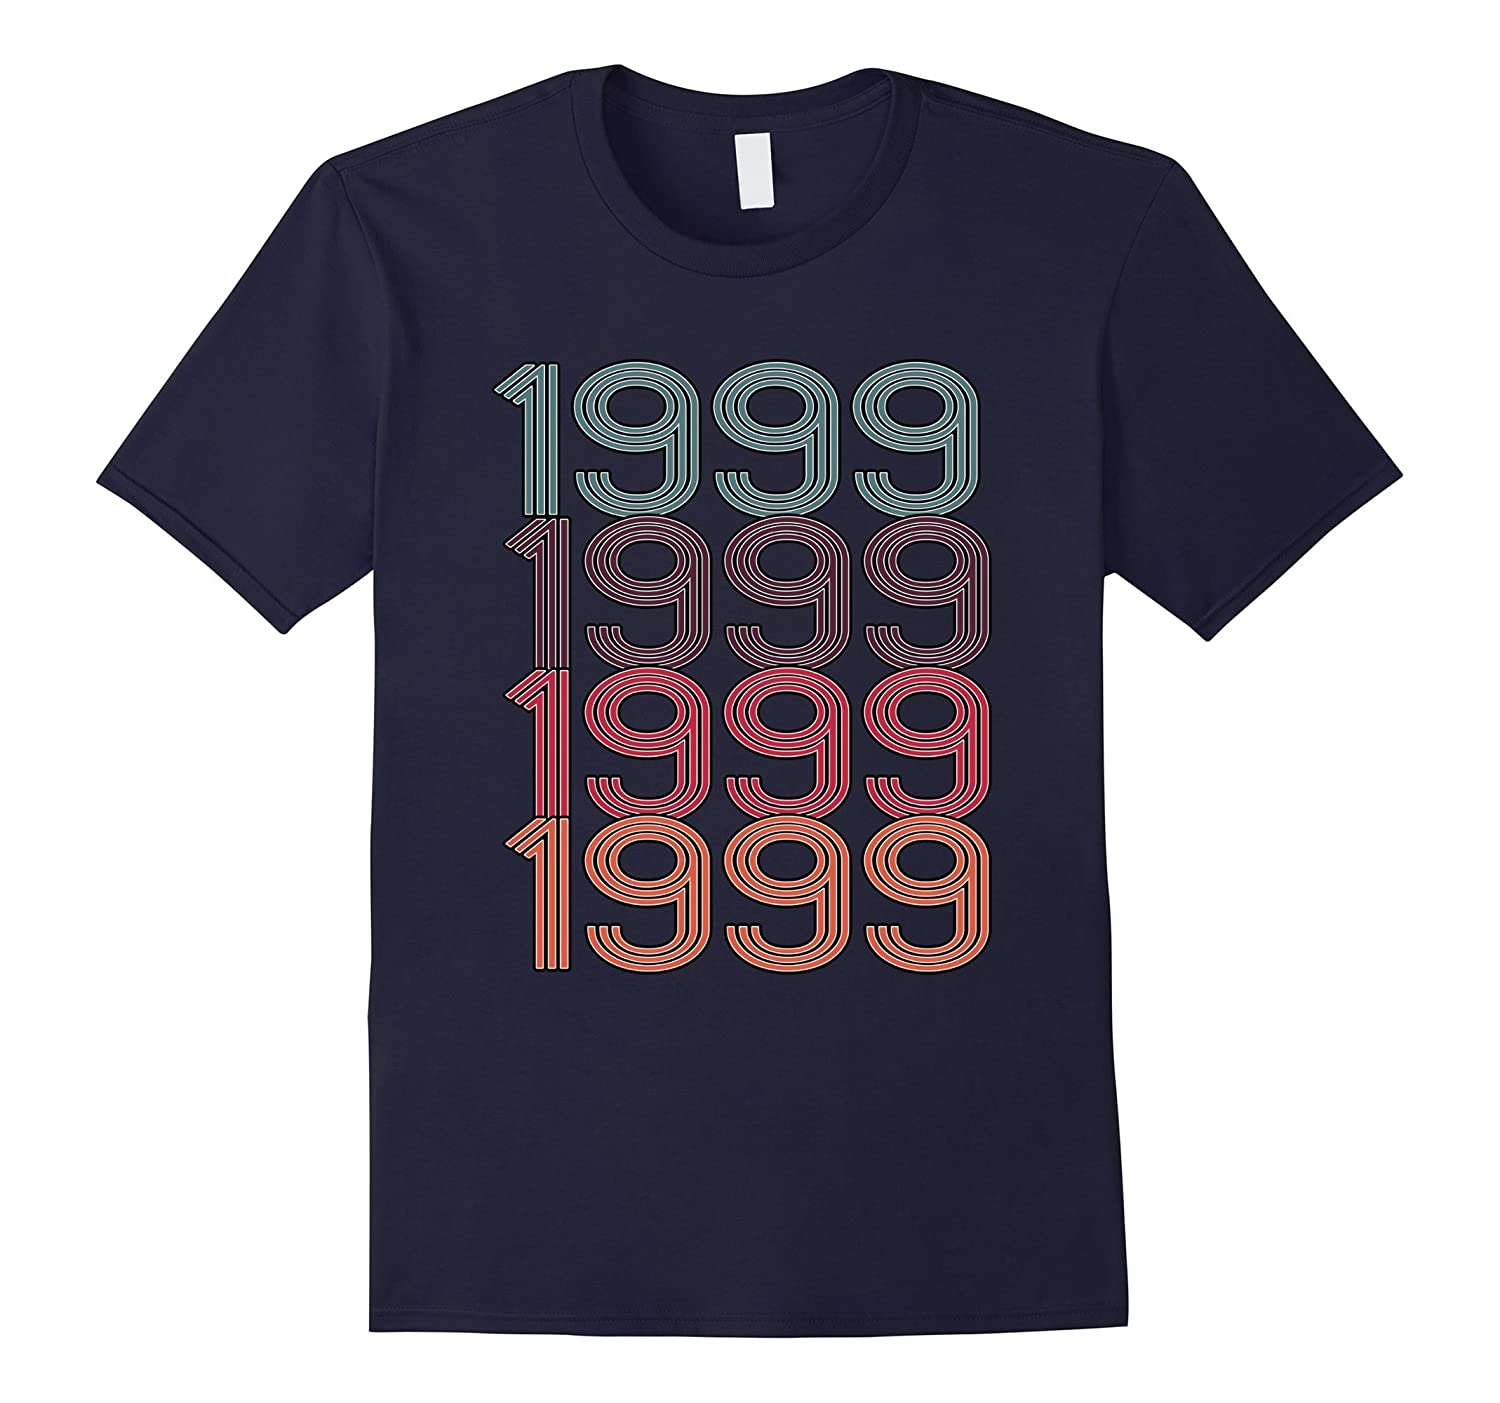 1999 Retro Vintage Birthday T-Shirt Birthday Gift Idea-FL